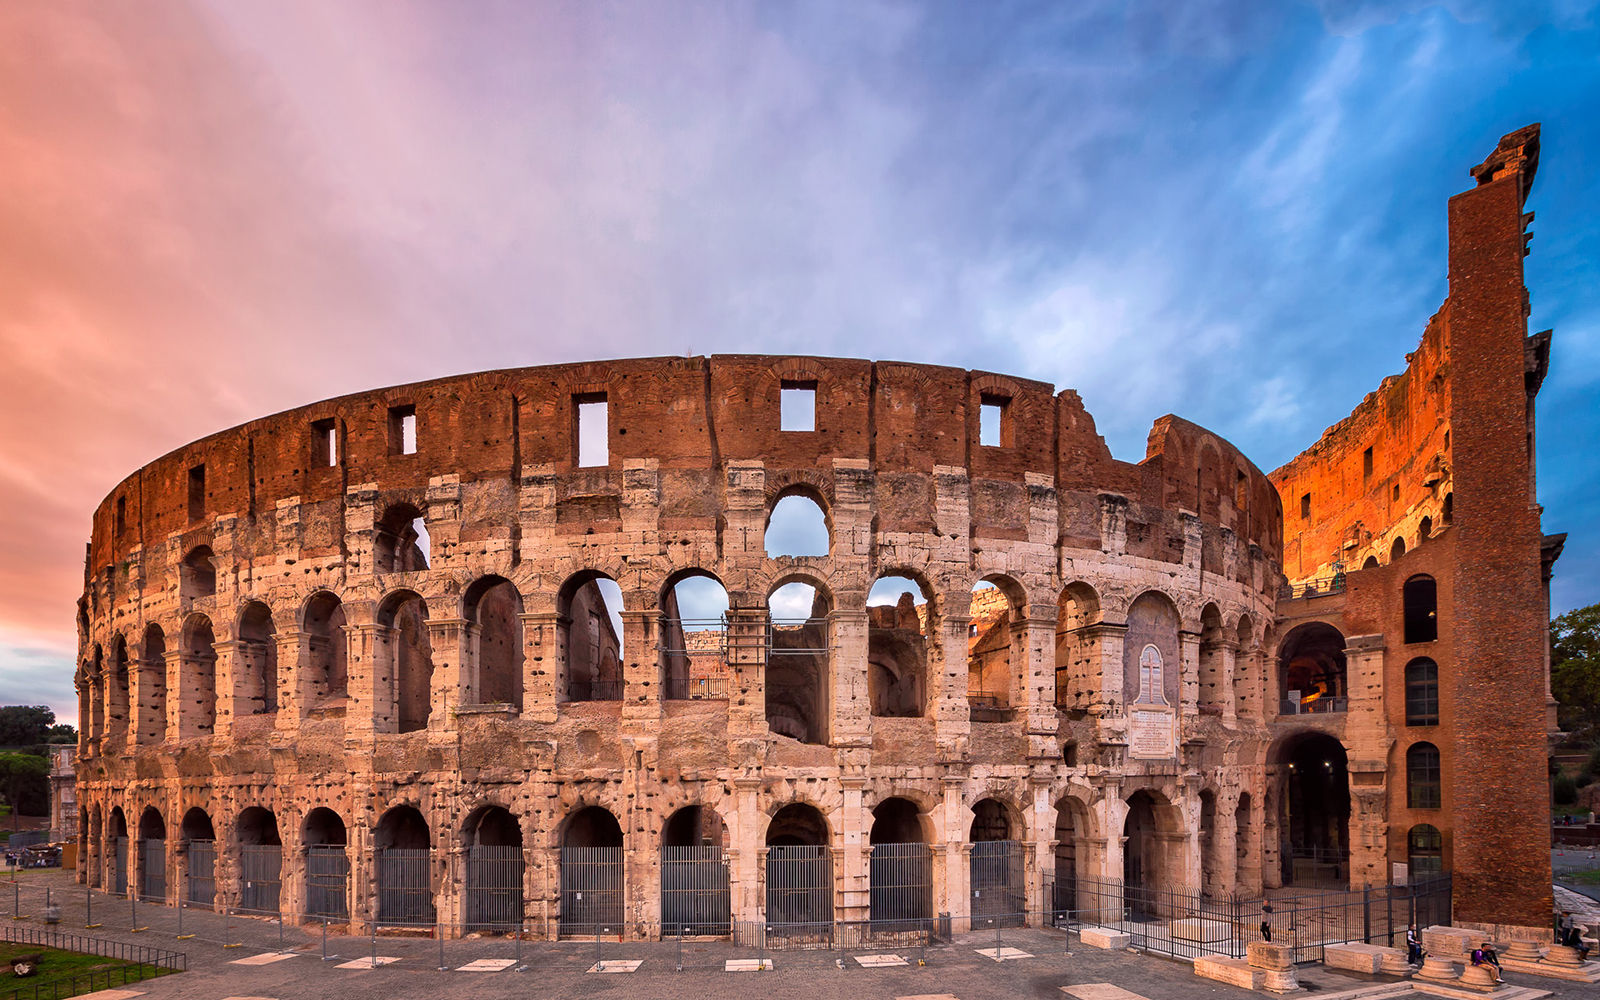 31c6d57f 9ddf 4ba3 bdc4 3f8b3394eb7b 8878 rome skip the line guided tour of colosseum roman forum and palatine hill 01